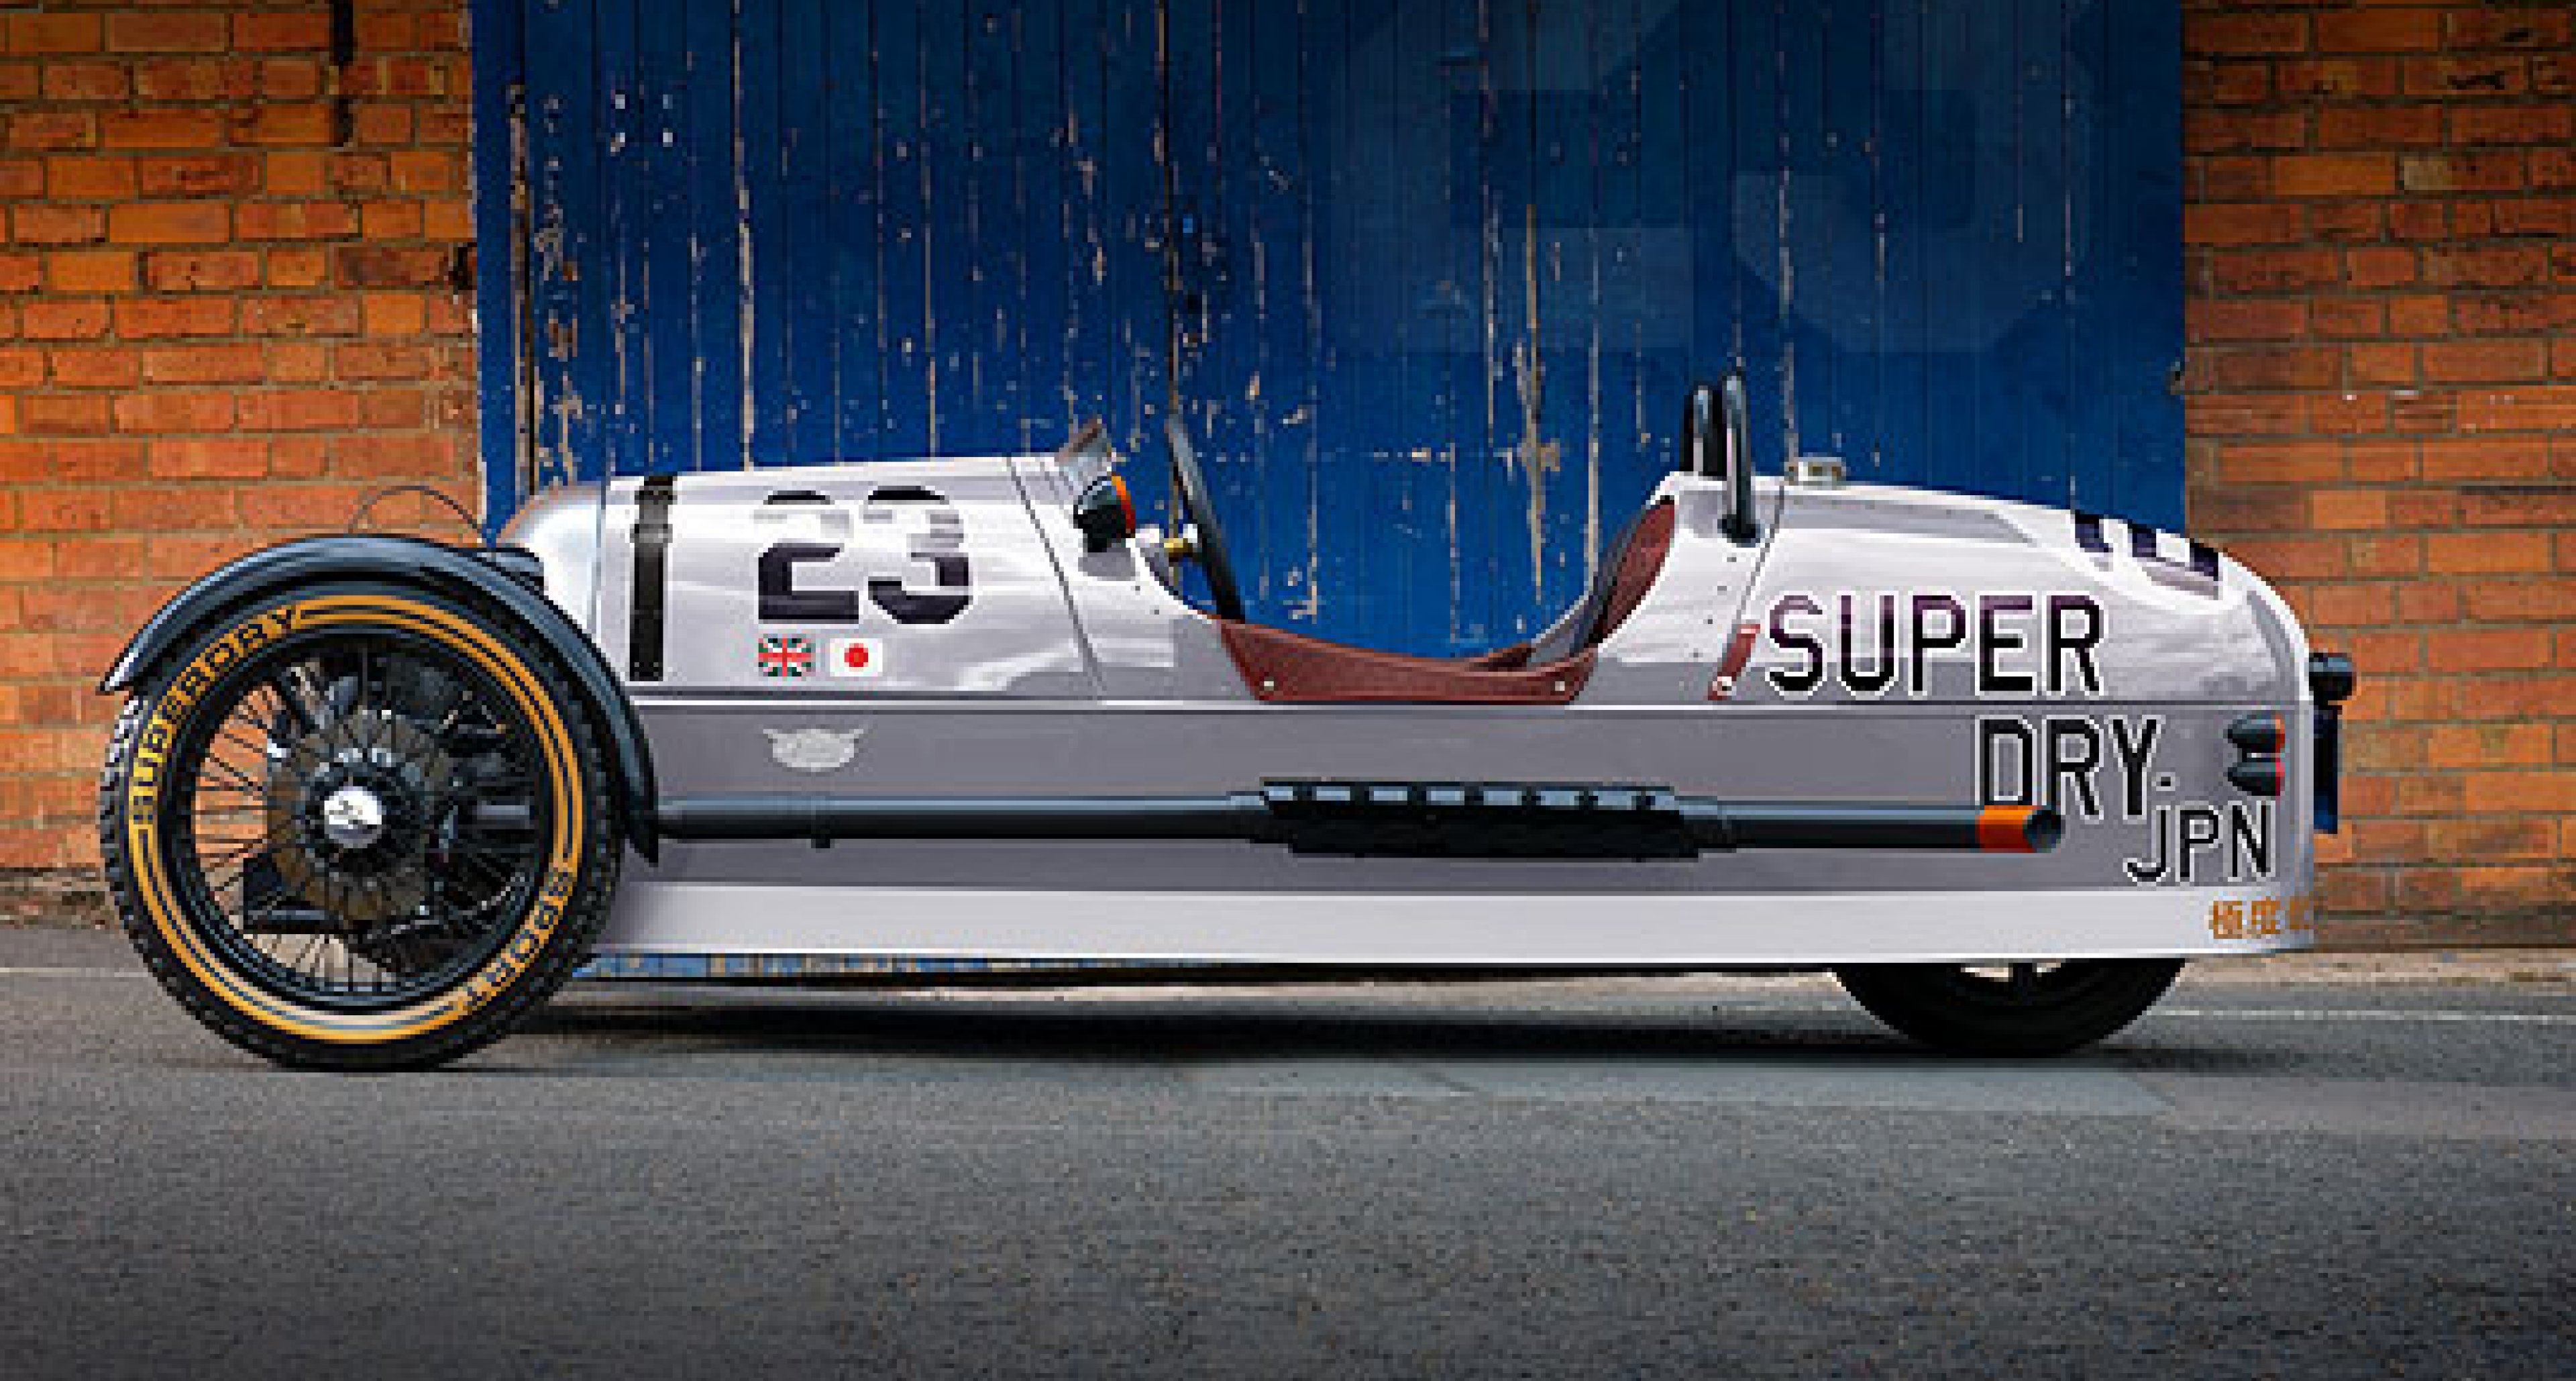 Morgan and Superdry: Limited-edition car and clothing